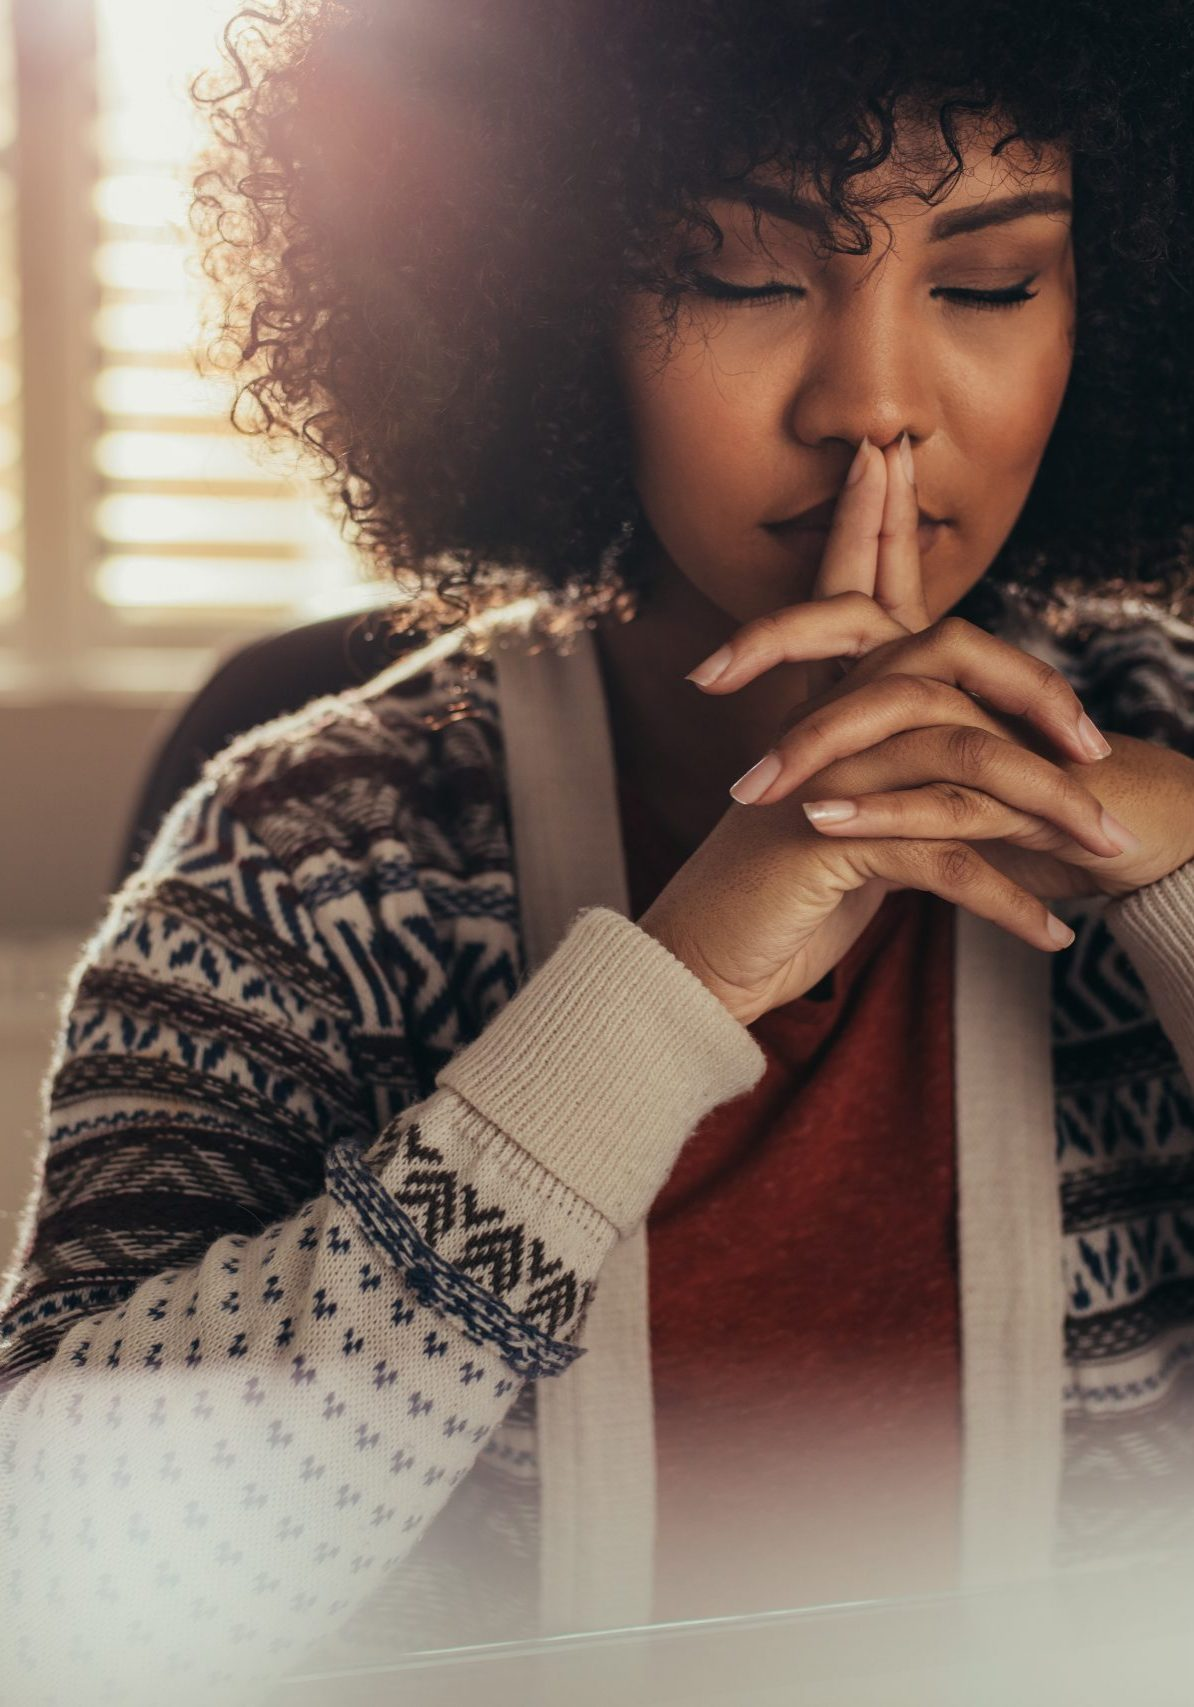 African female sitting at her work desk and thinking with her eyes closed. Stressed woman taking a break to come up with solution using mindfulness.